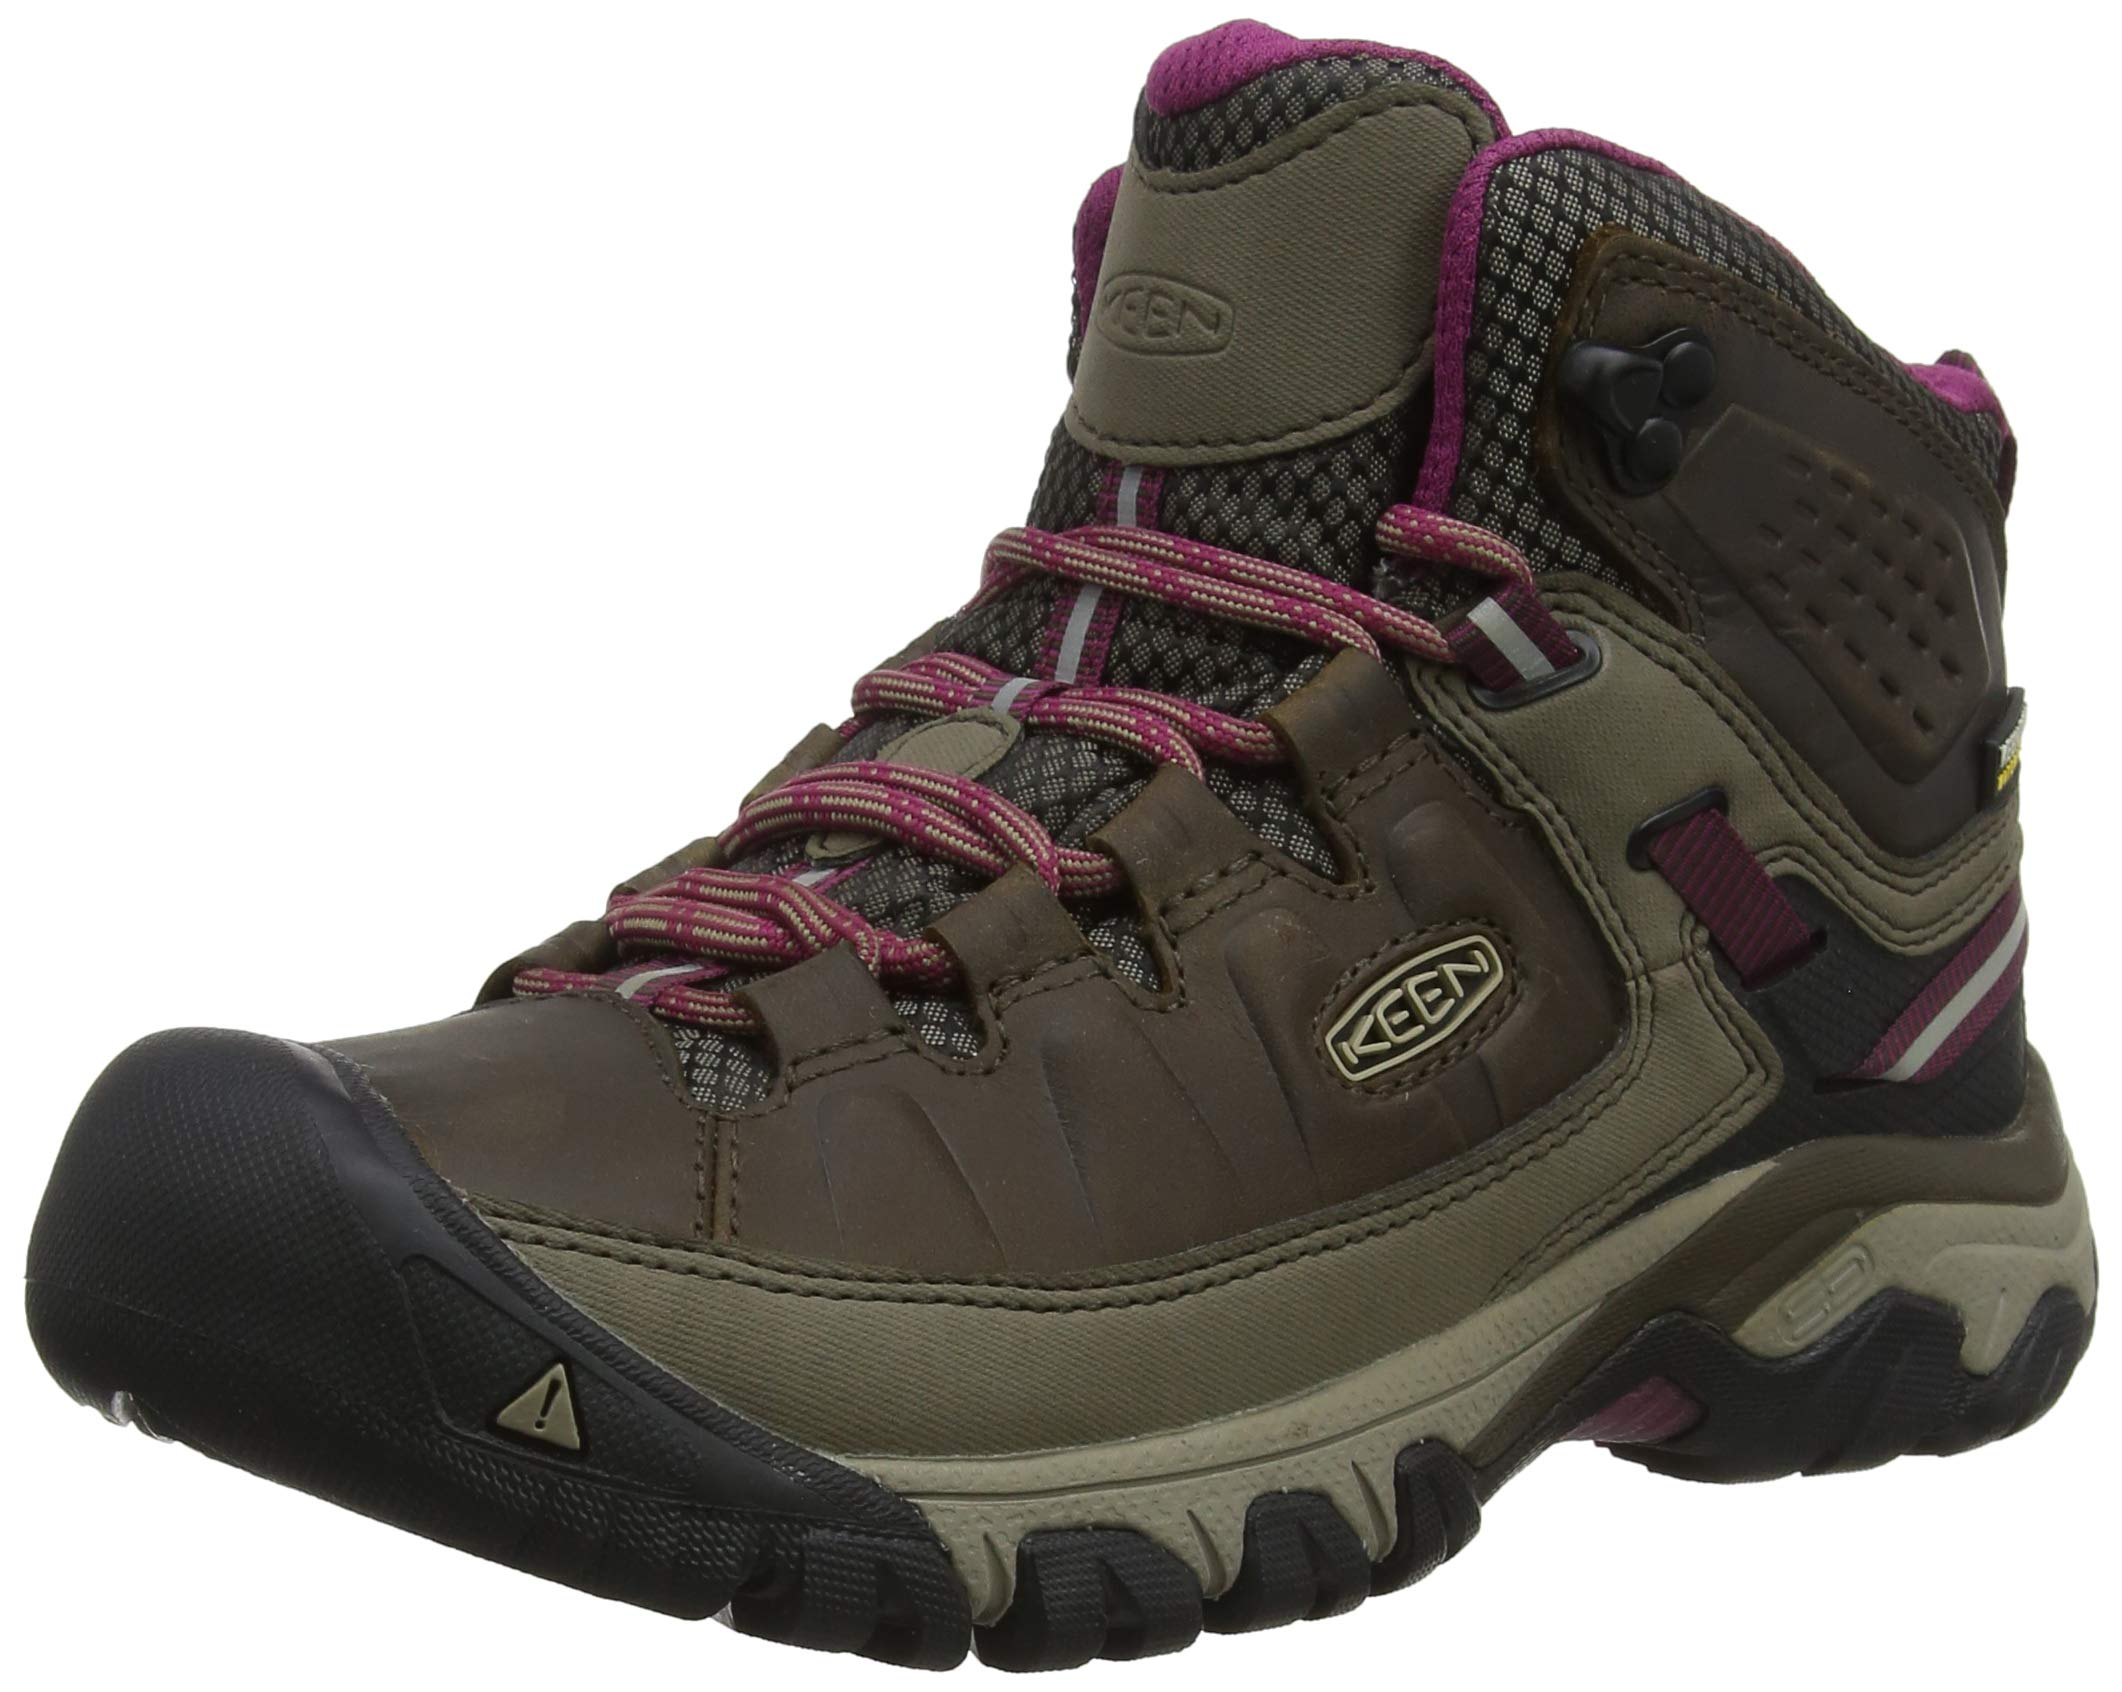 ff11213e8df KEEN Women's Targhee Iii Mid Wp High Rise Hiking Shoes